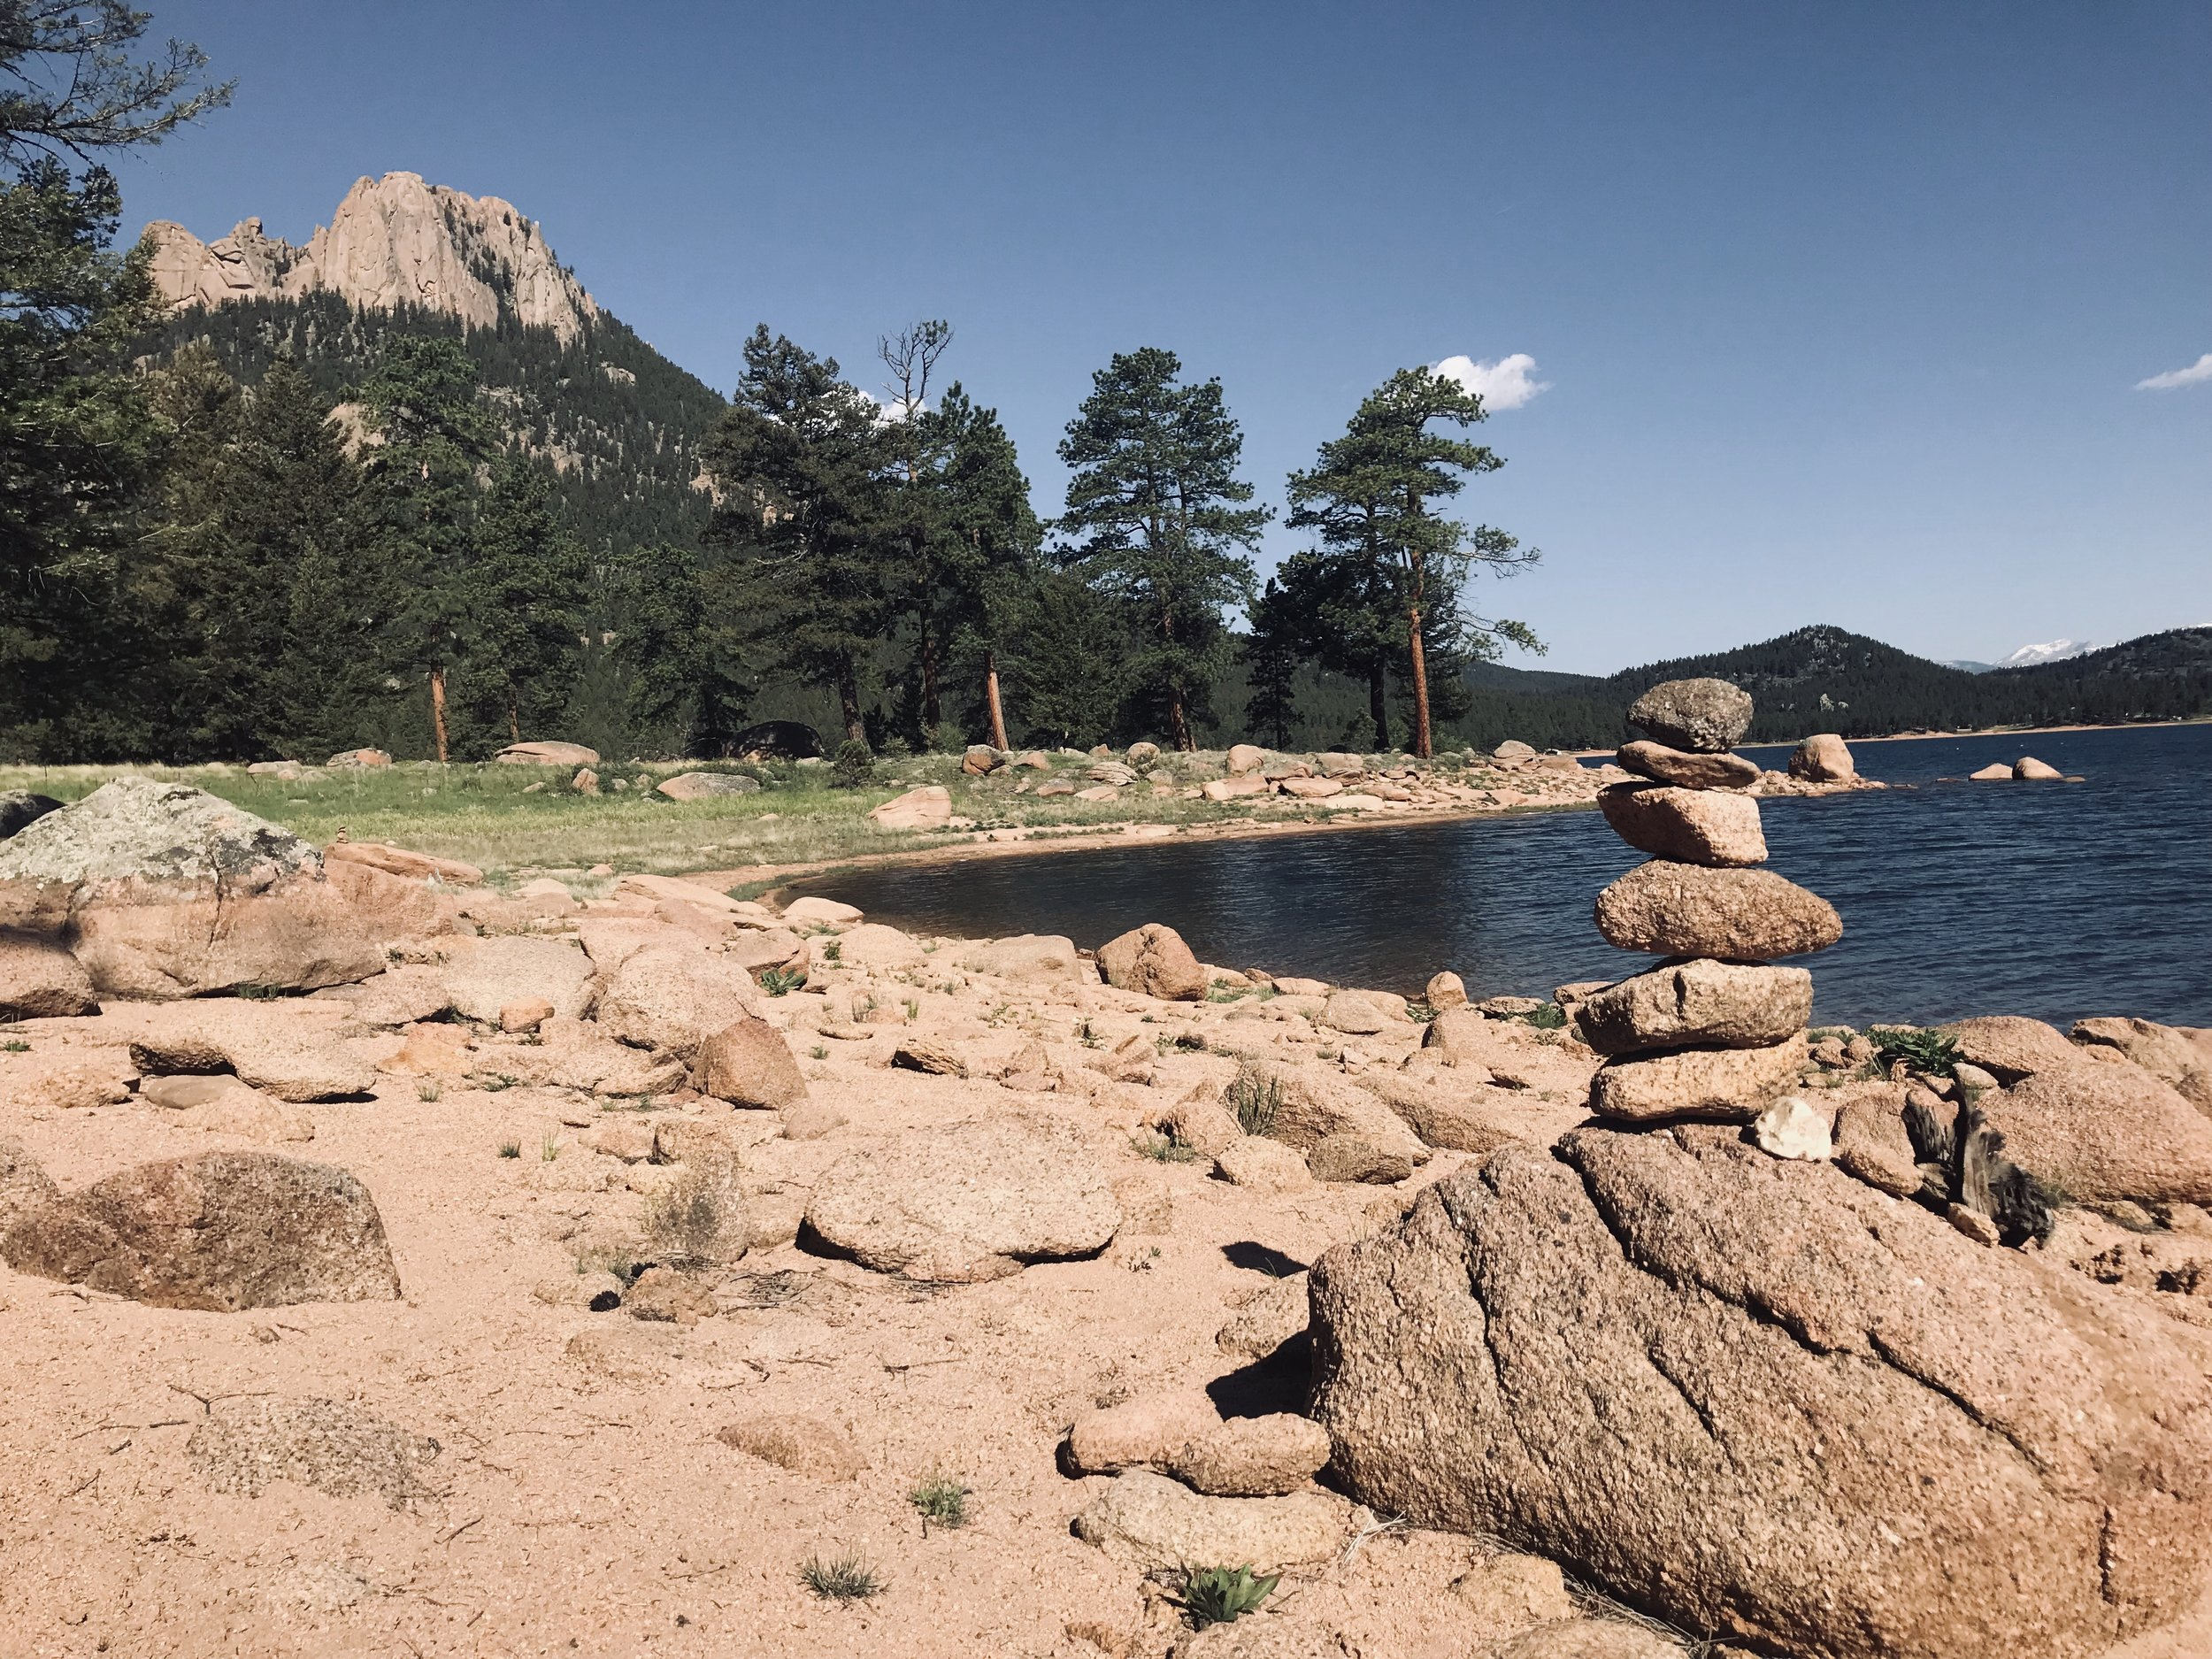 Rock cairns mark the way along the lake trail.